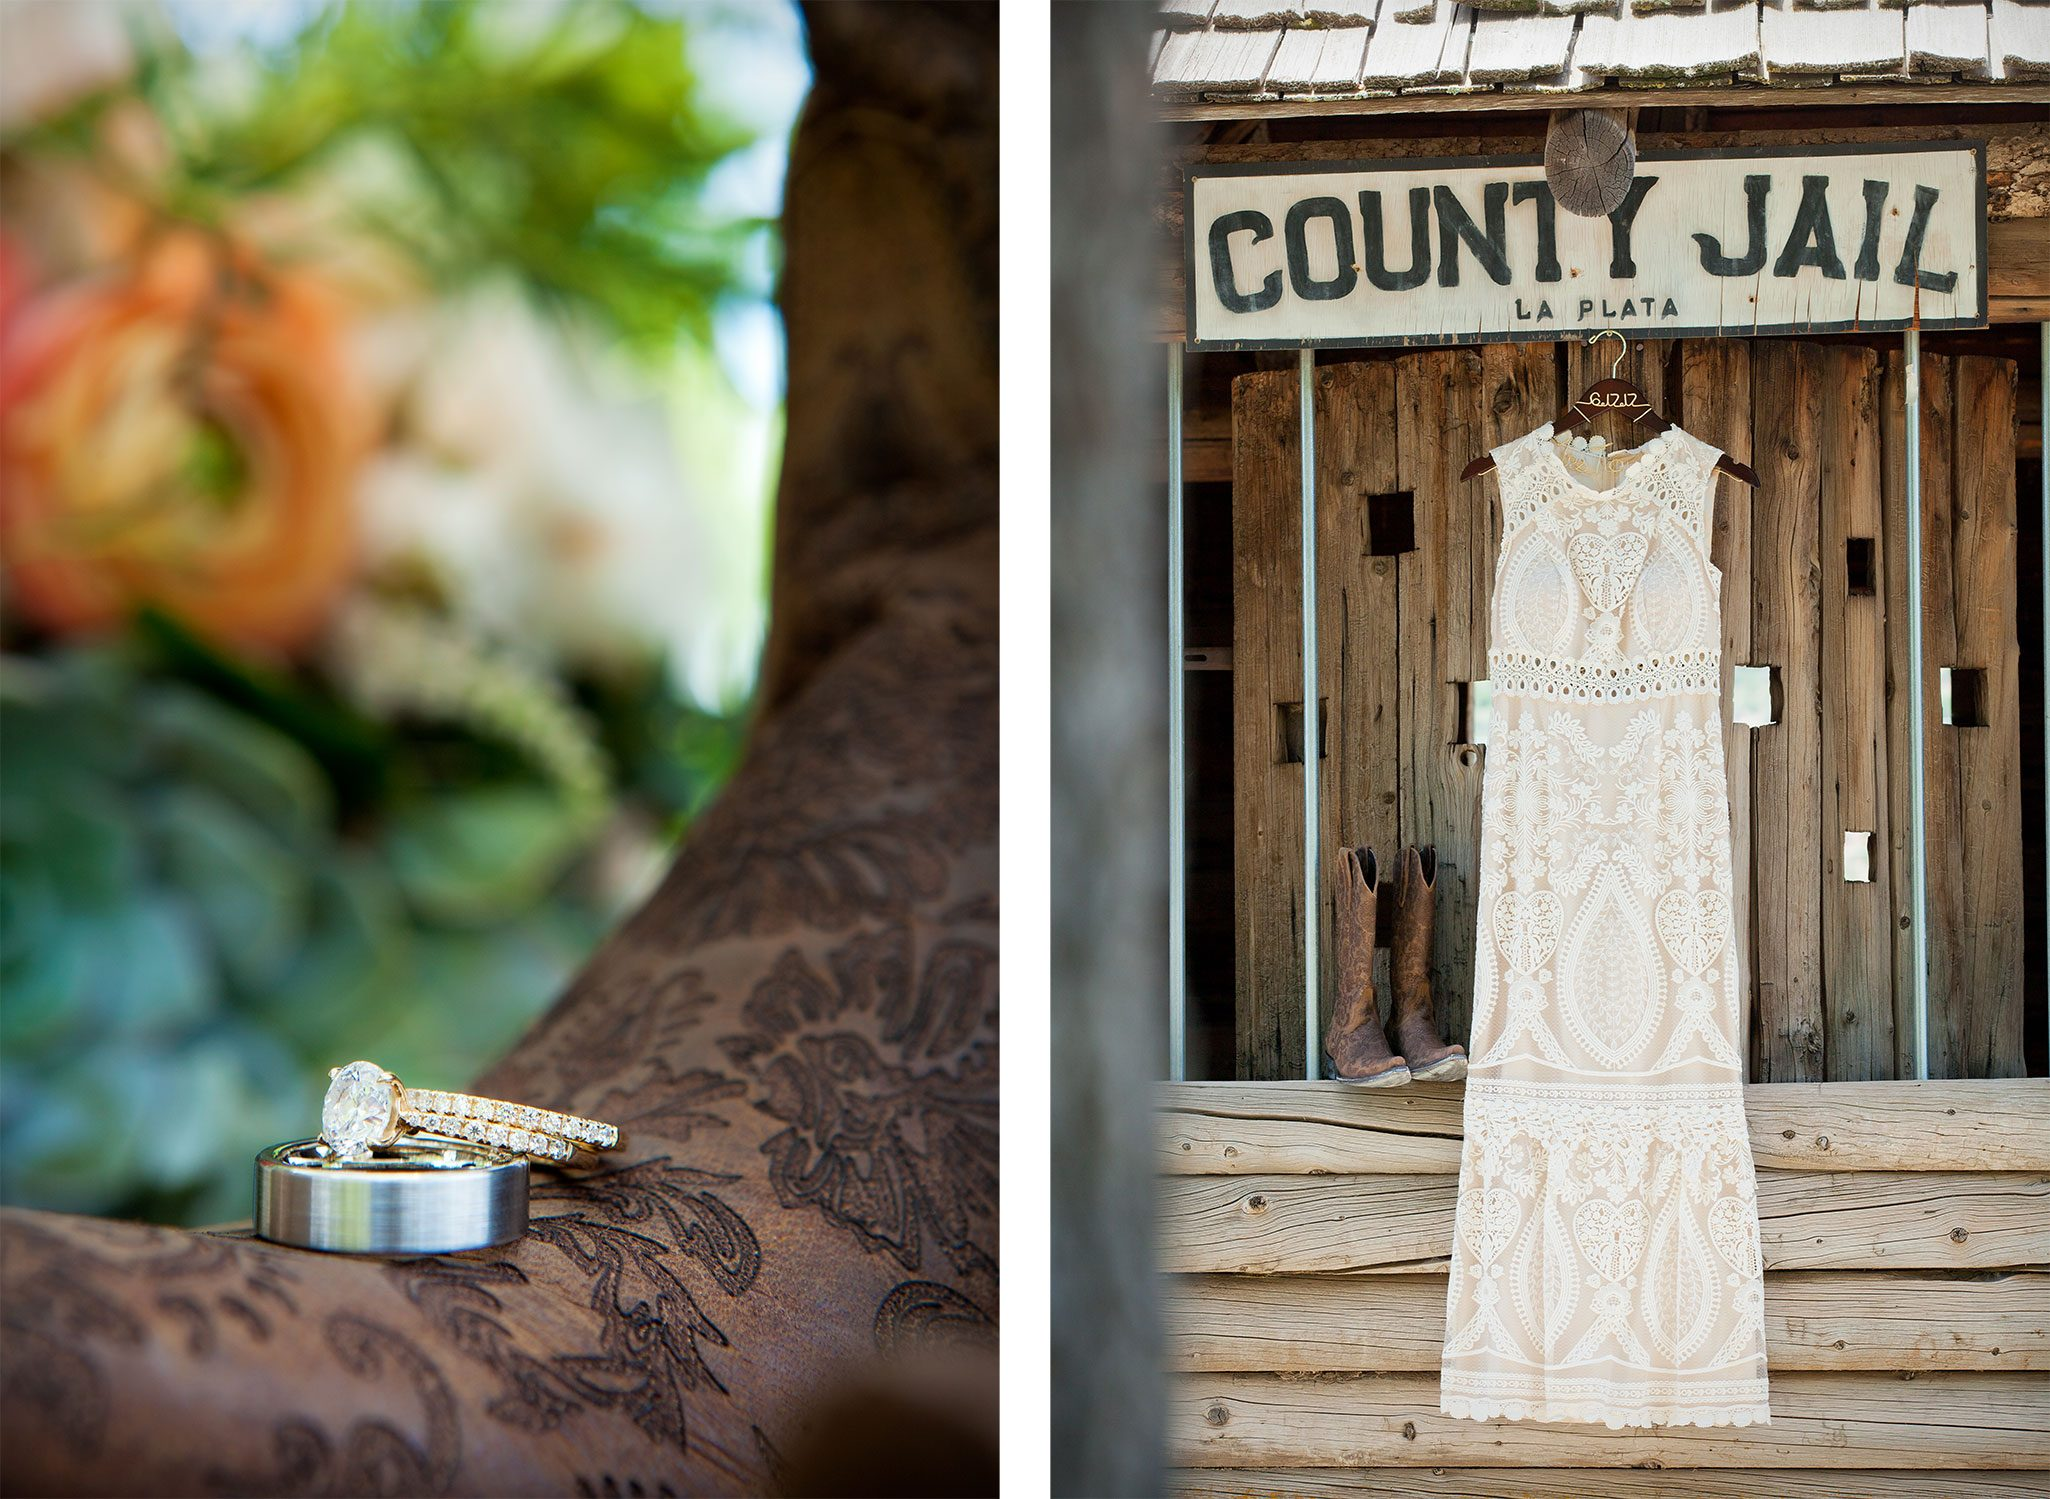 Rustic cowboy boots, ring, wedding dress hanging in old jail building